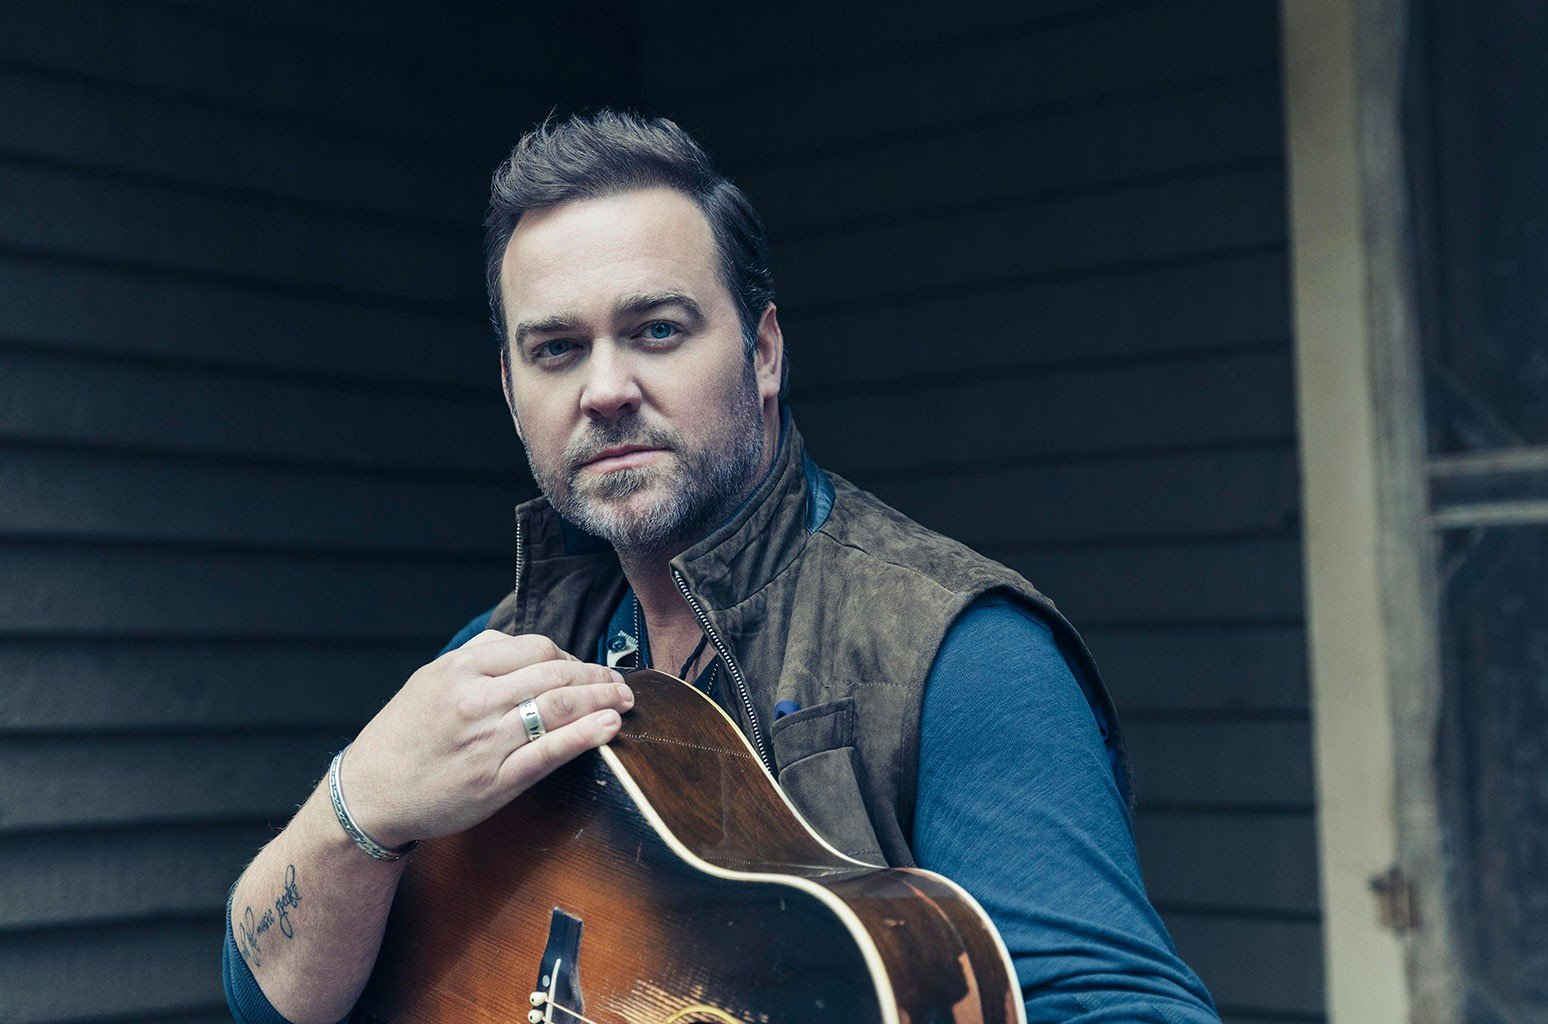 92.3 WCOL's Presents Lee Brice